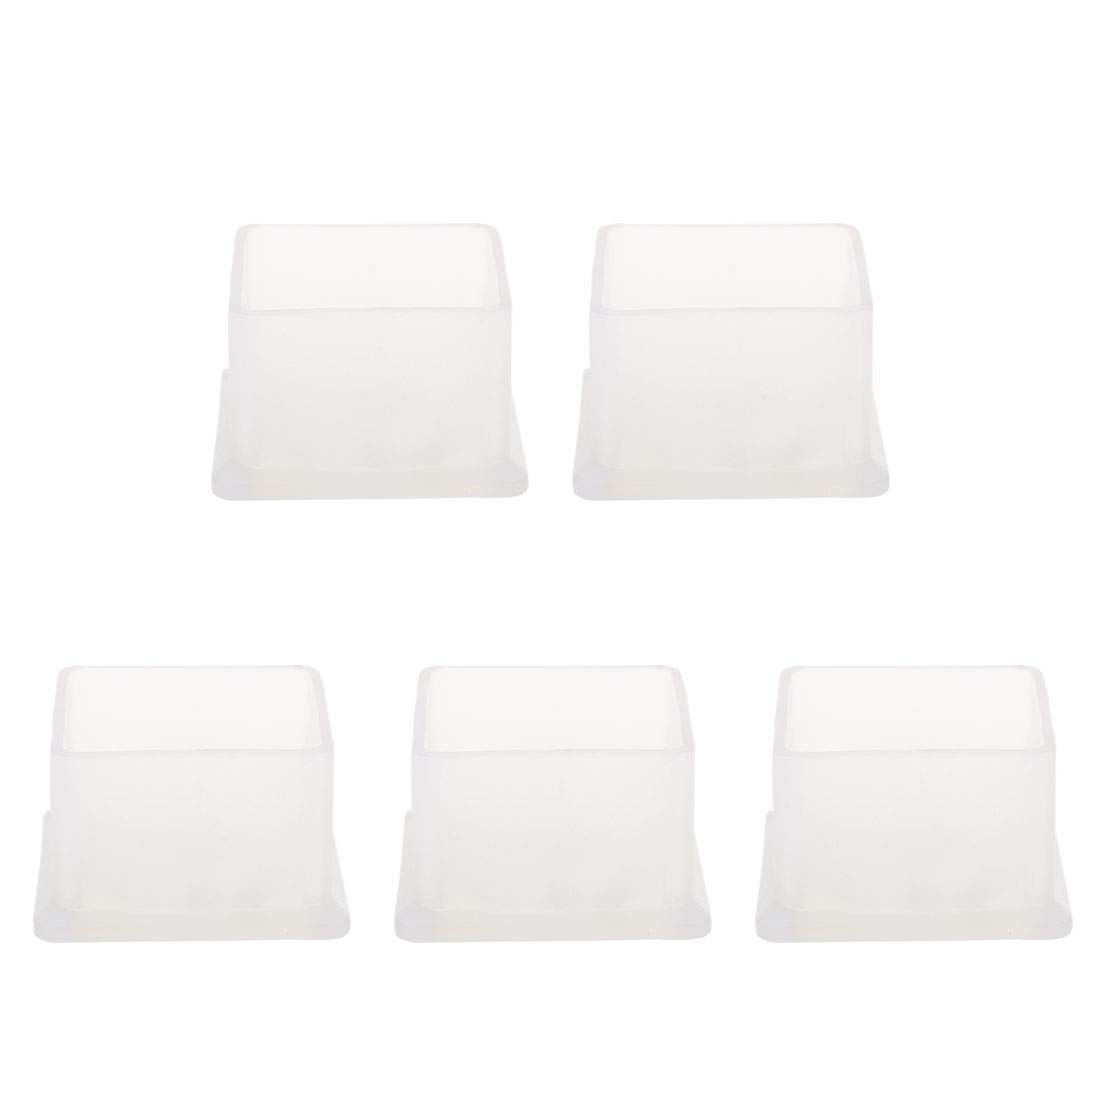 uxcell Clear PVC Chair Leg Caps End Tip Feet Cover Furniture Glide Floor Protector 5pcs 2 x 2 50x50mm Reduce Noise Prevent Scratch Rectangular Inner Size